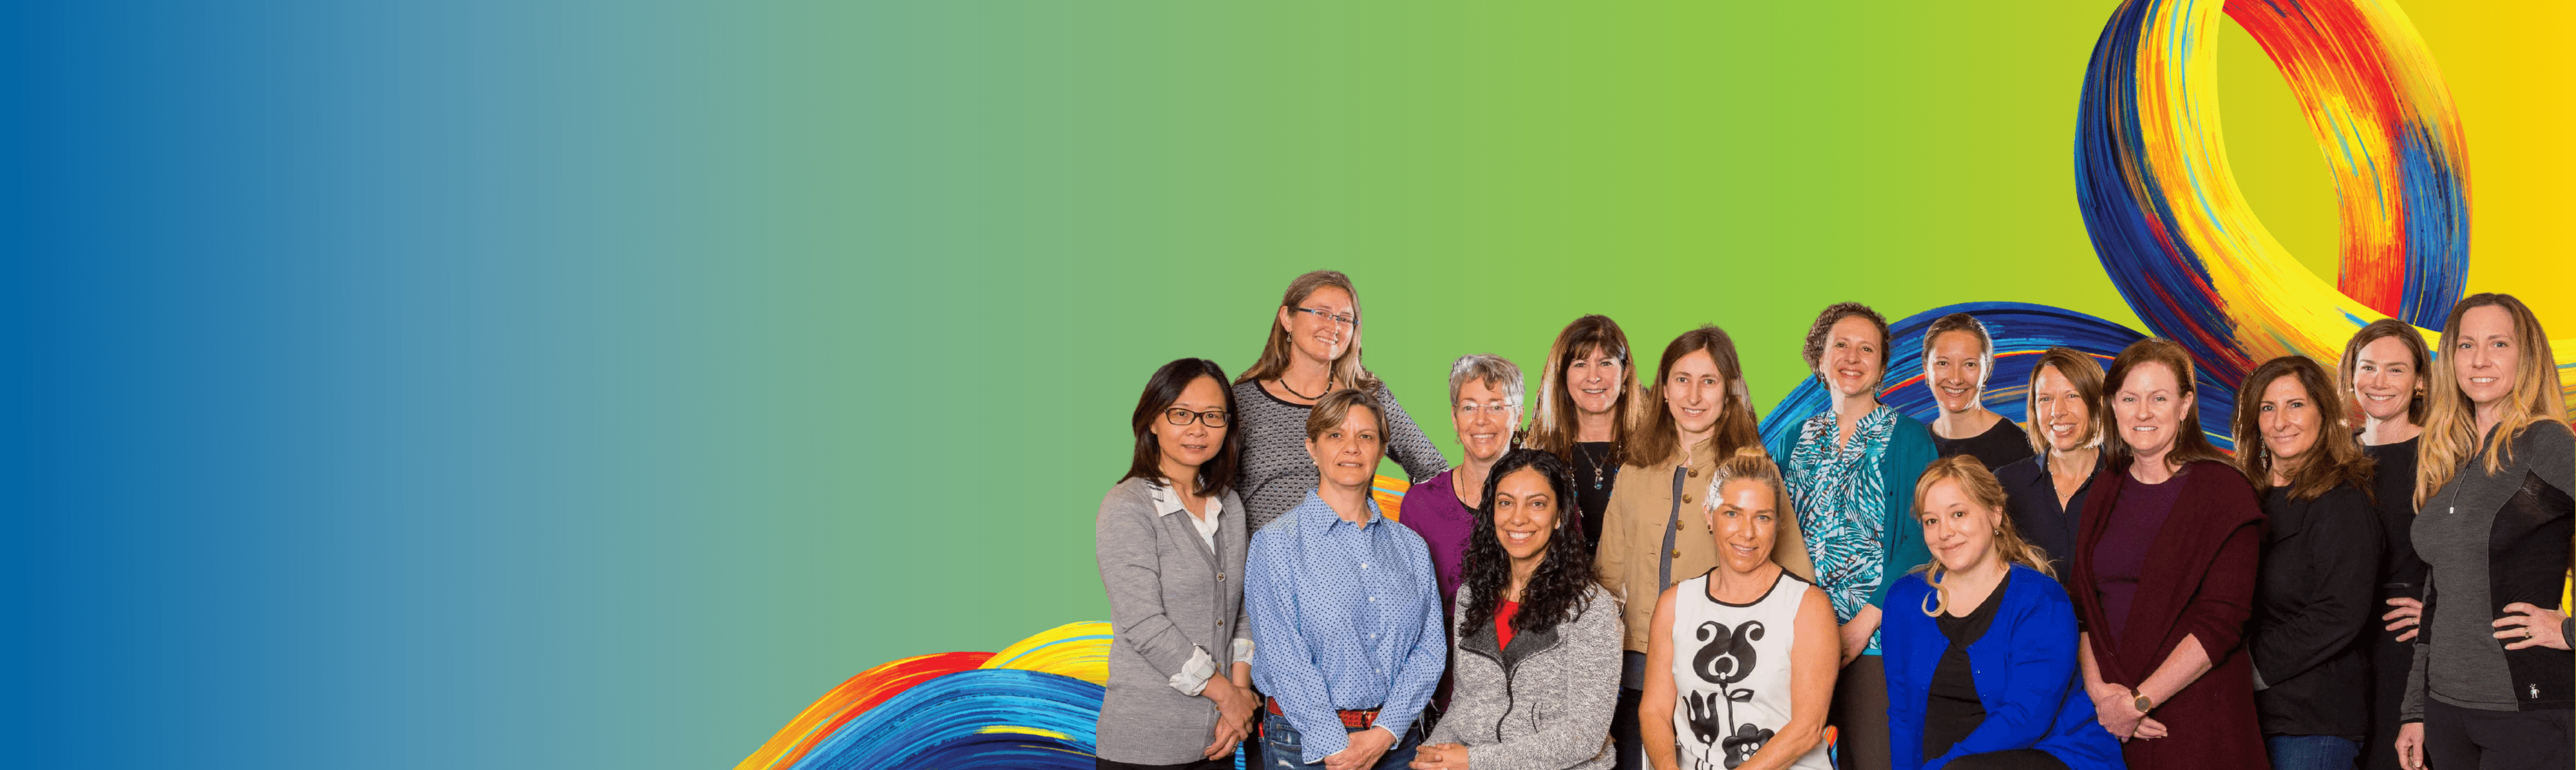 Group Picture of Female Faculty in front of the surge and a gradient blue to yellow background